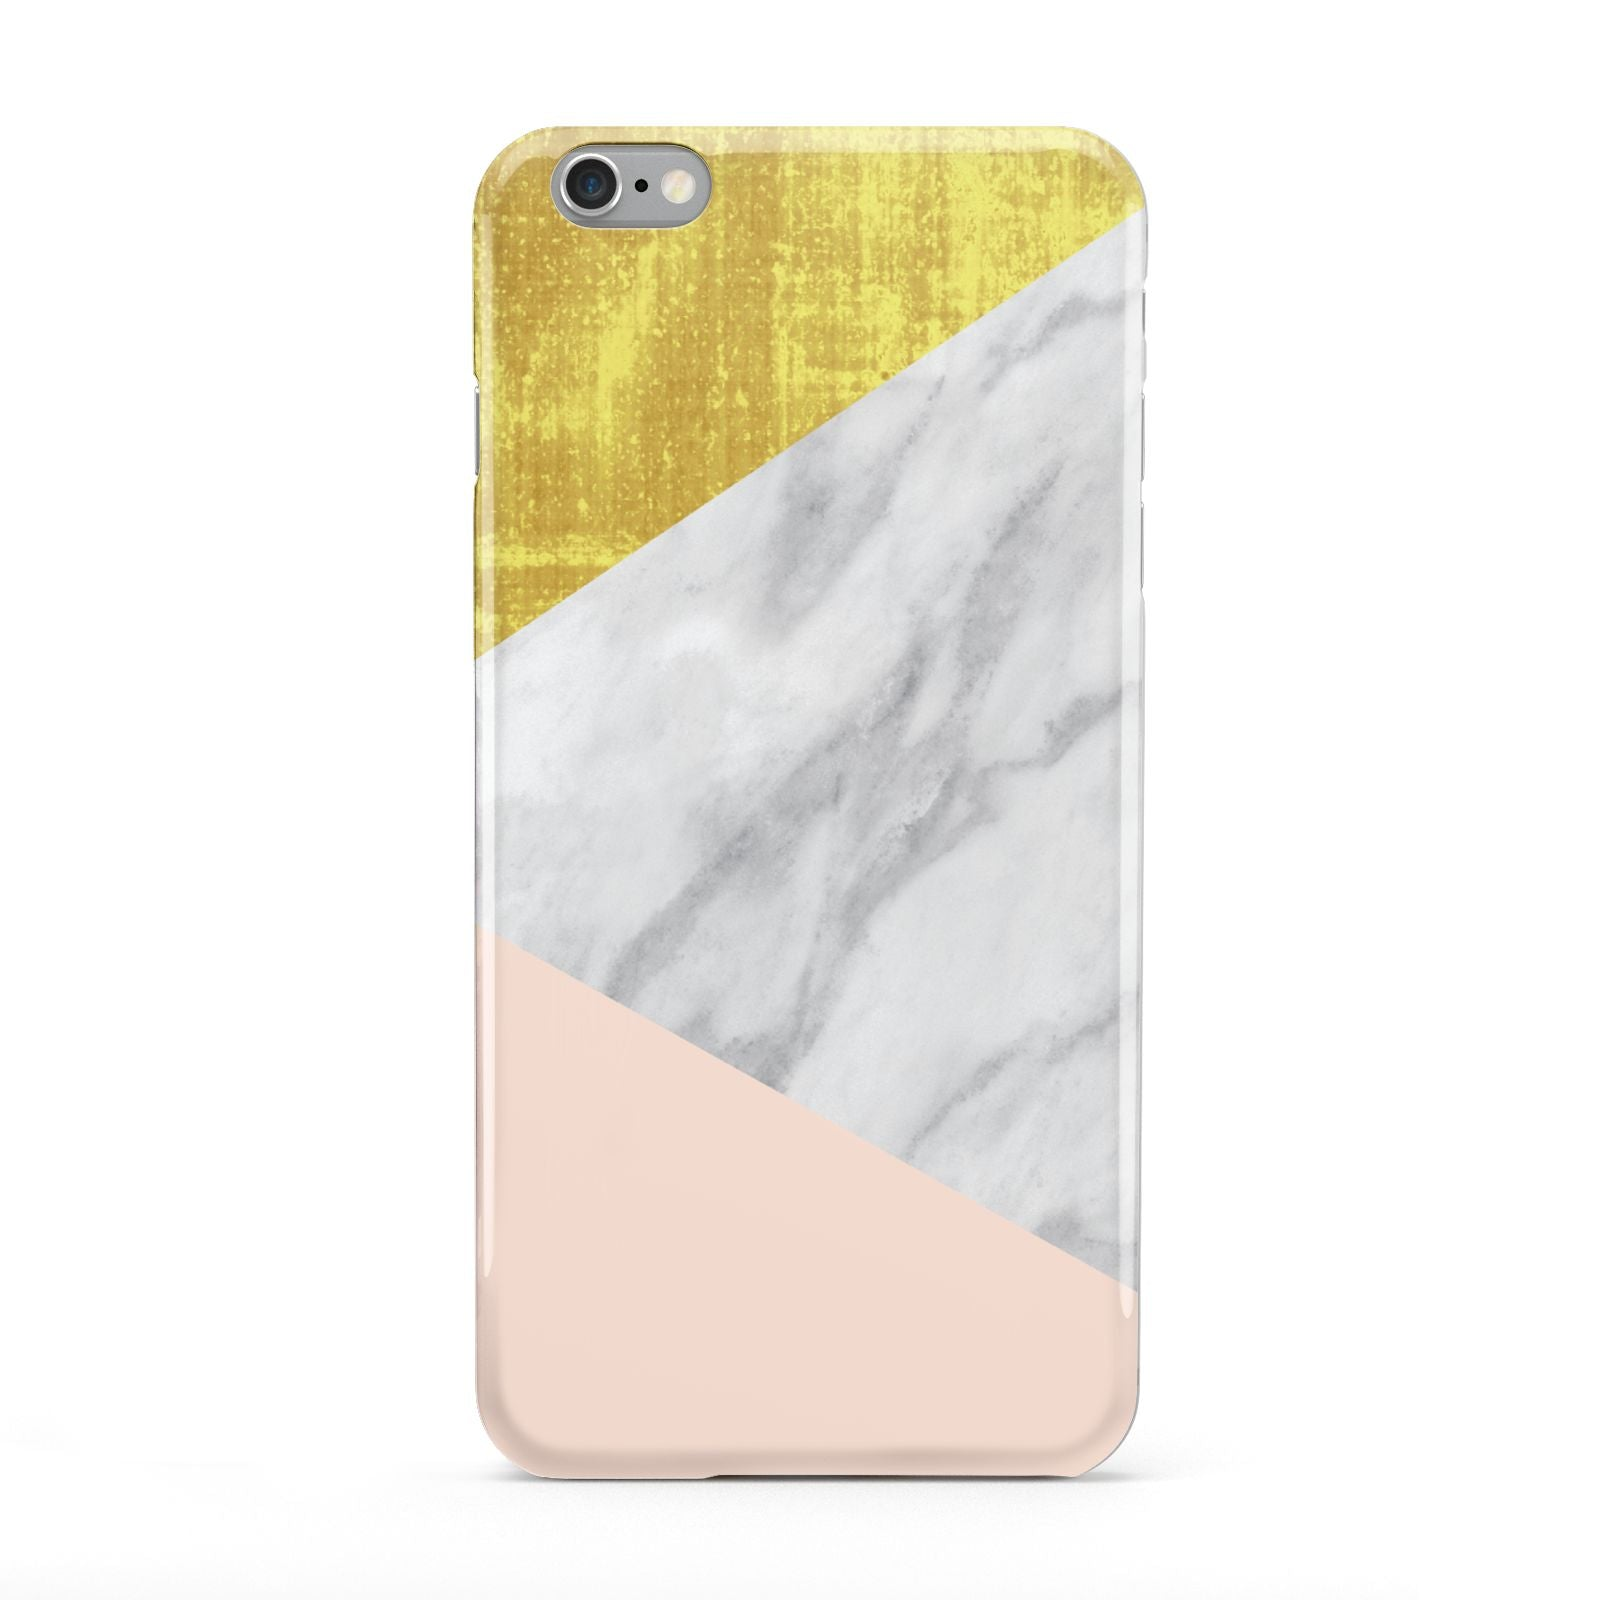 Marble White Gold Foil Peach Apple iPhone 6 Plus Case